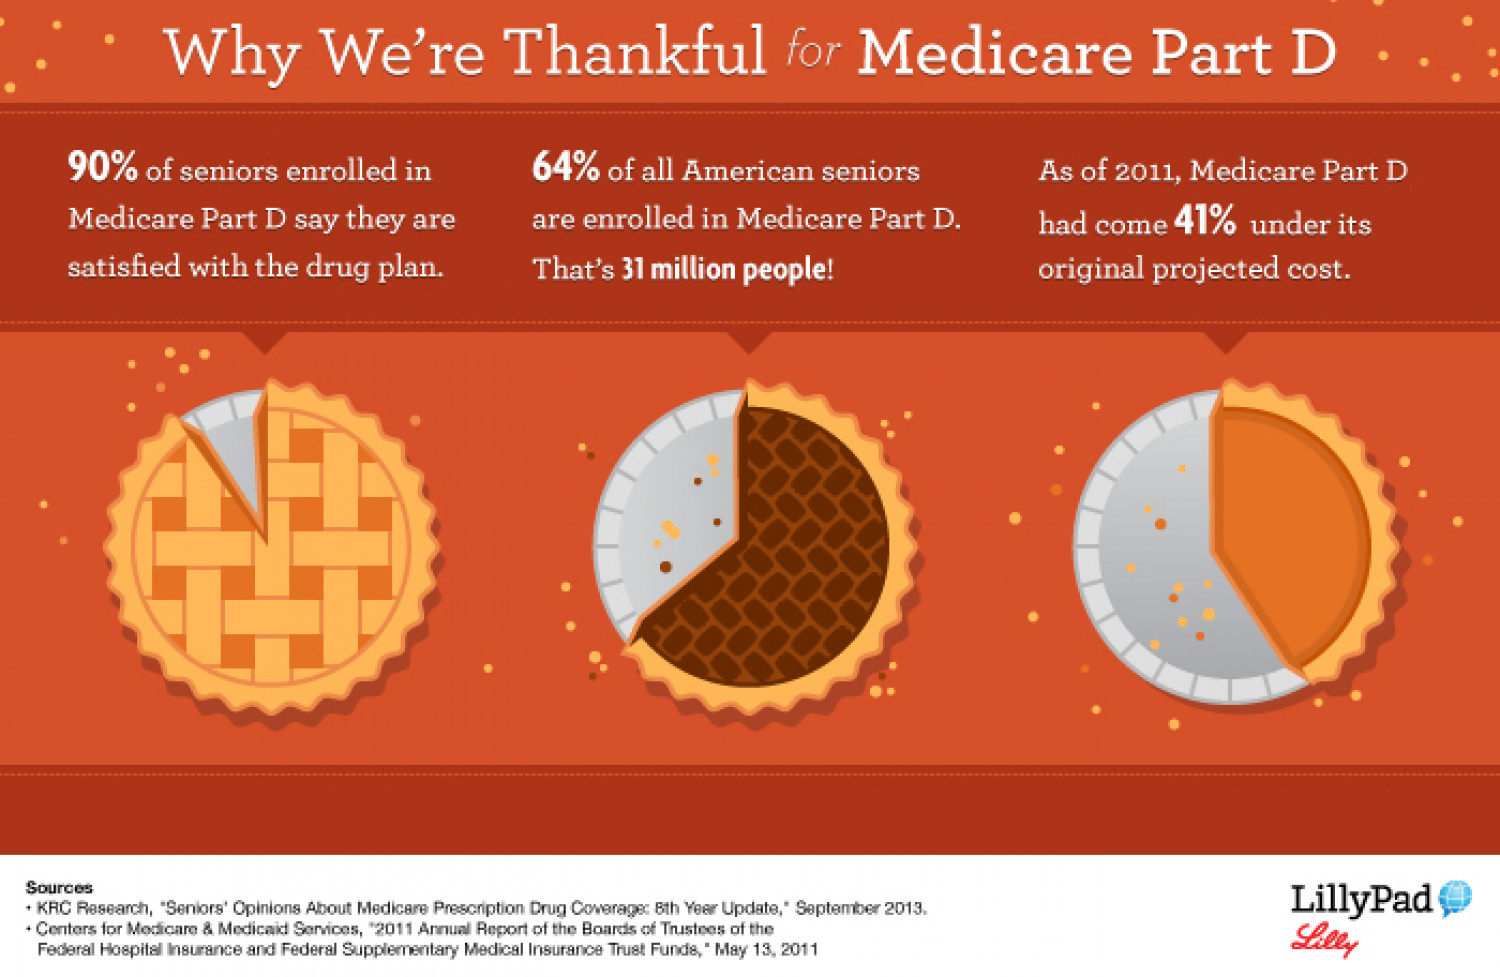 Why We're Thankful for Medicare Part D Infographic